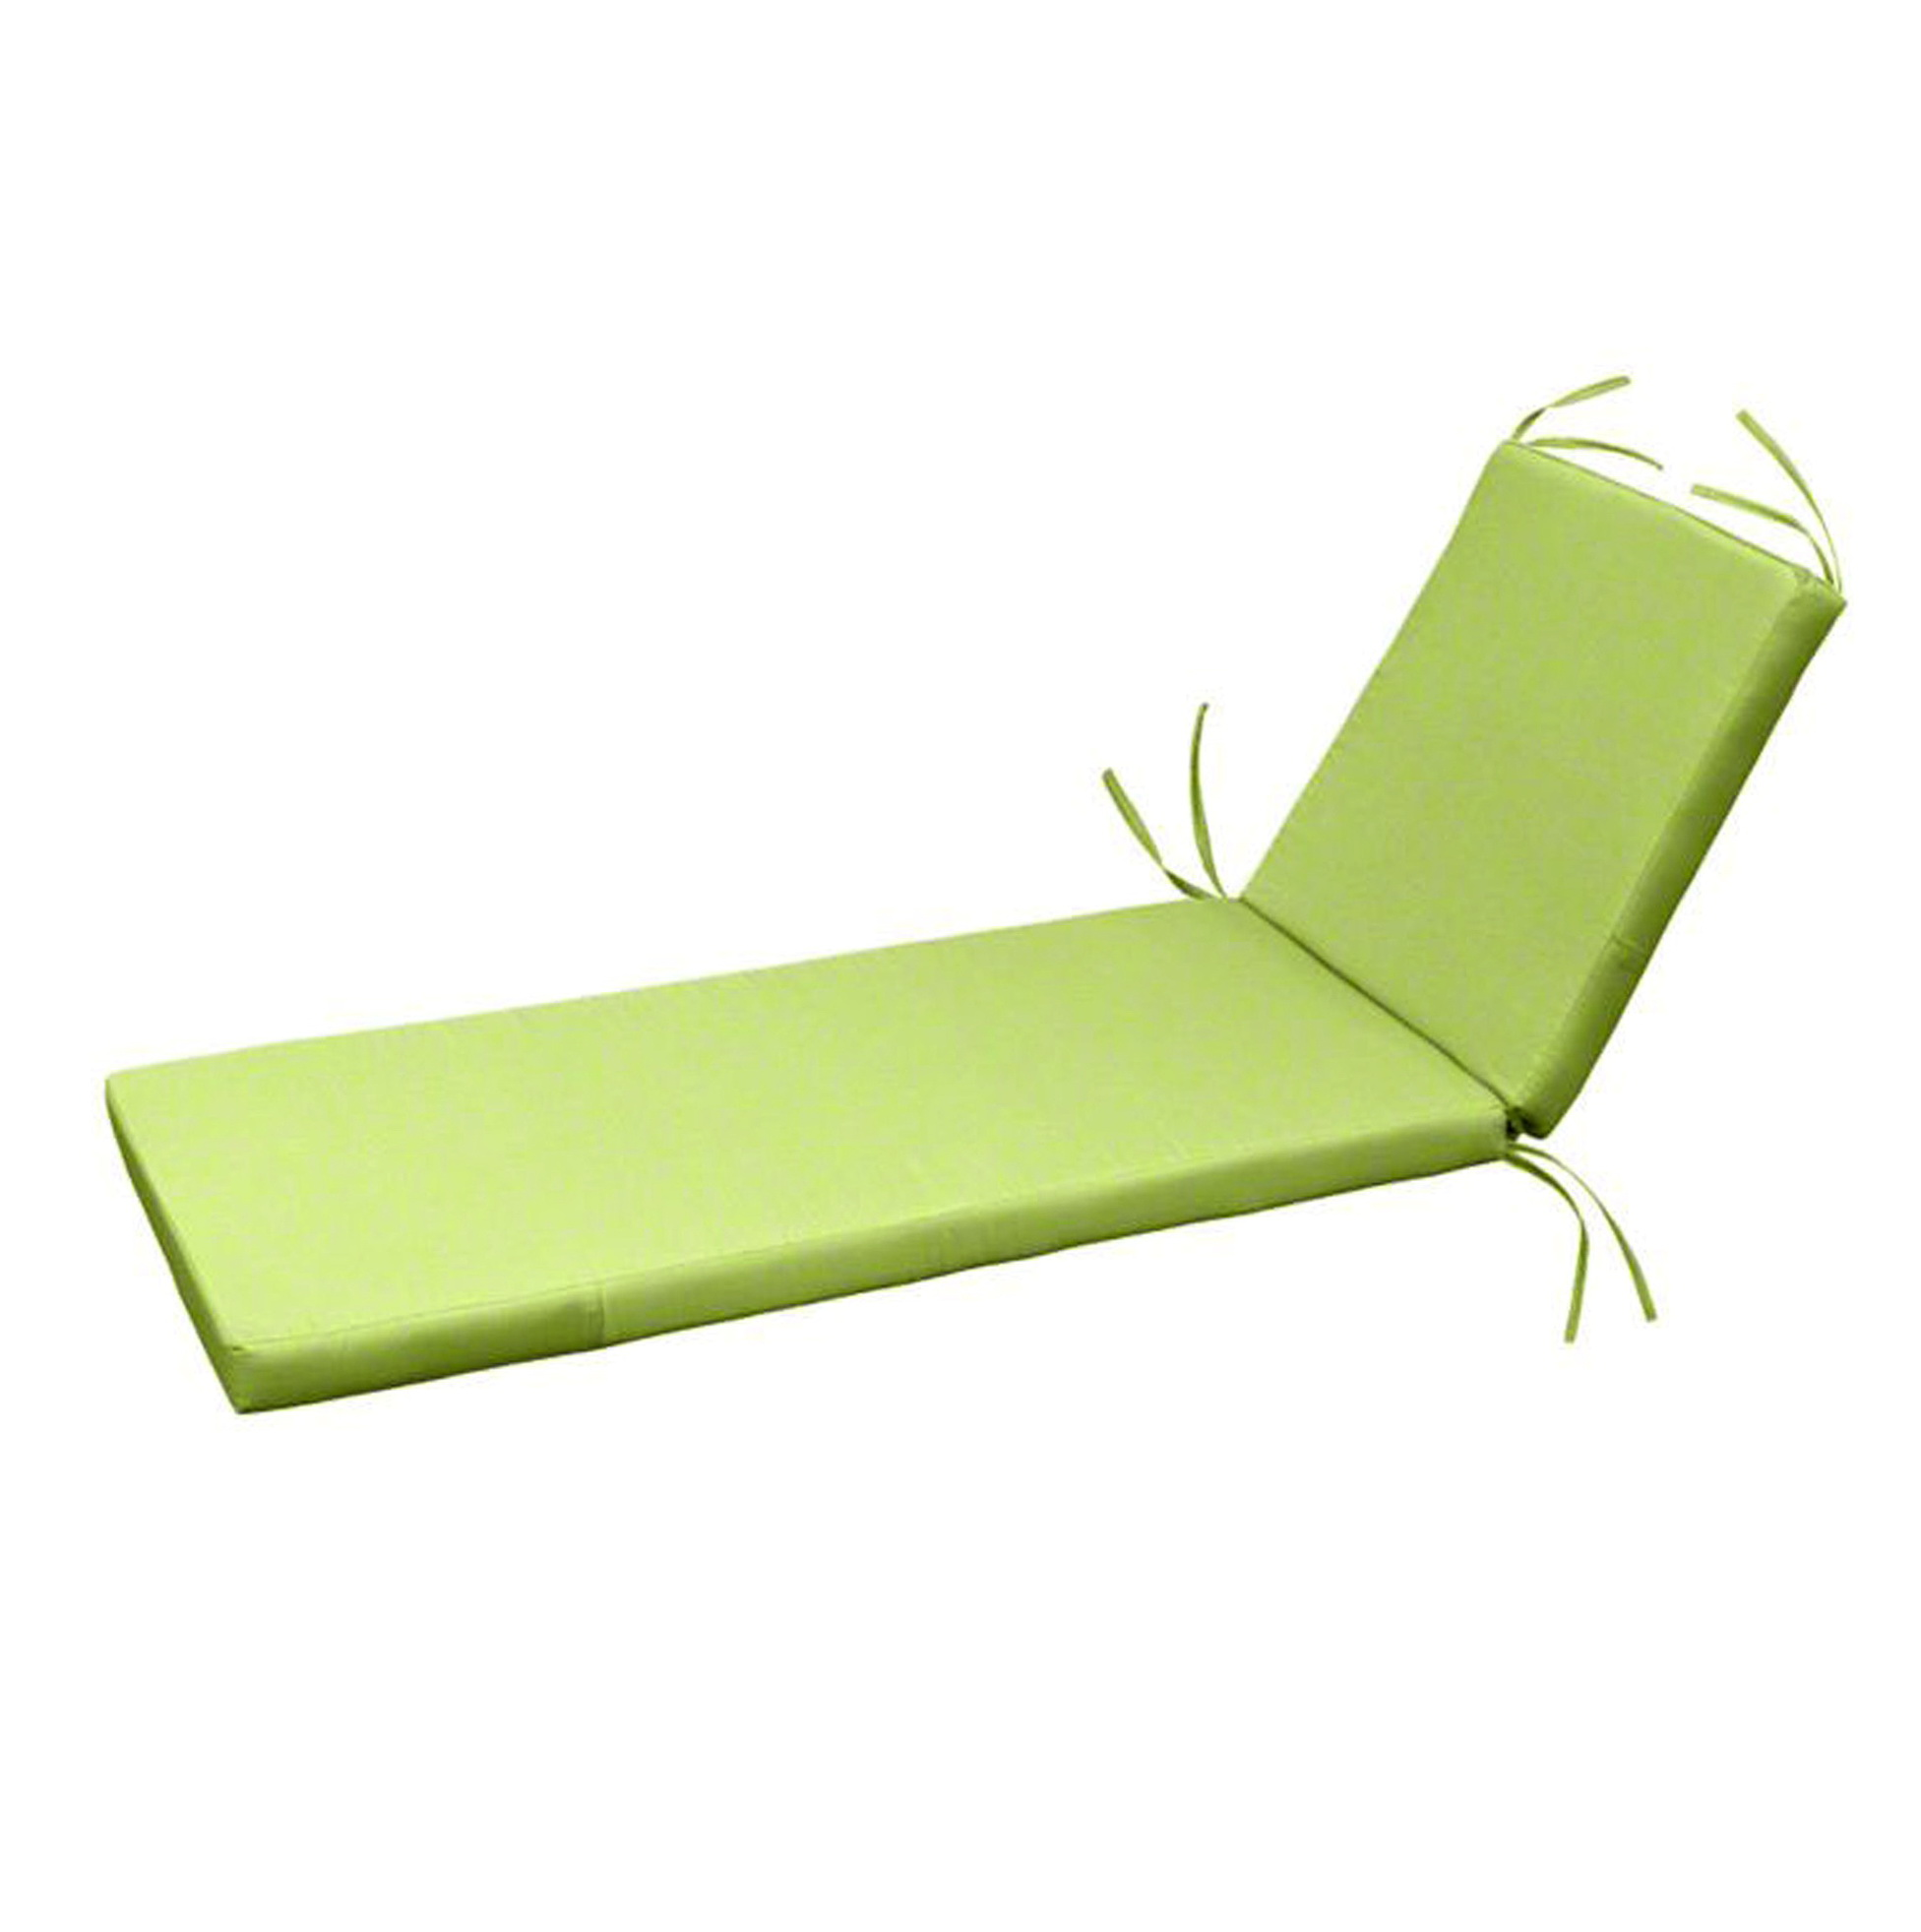 Chaise lounge cushions on clearance home design ideas for Chaise cushions clearance